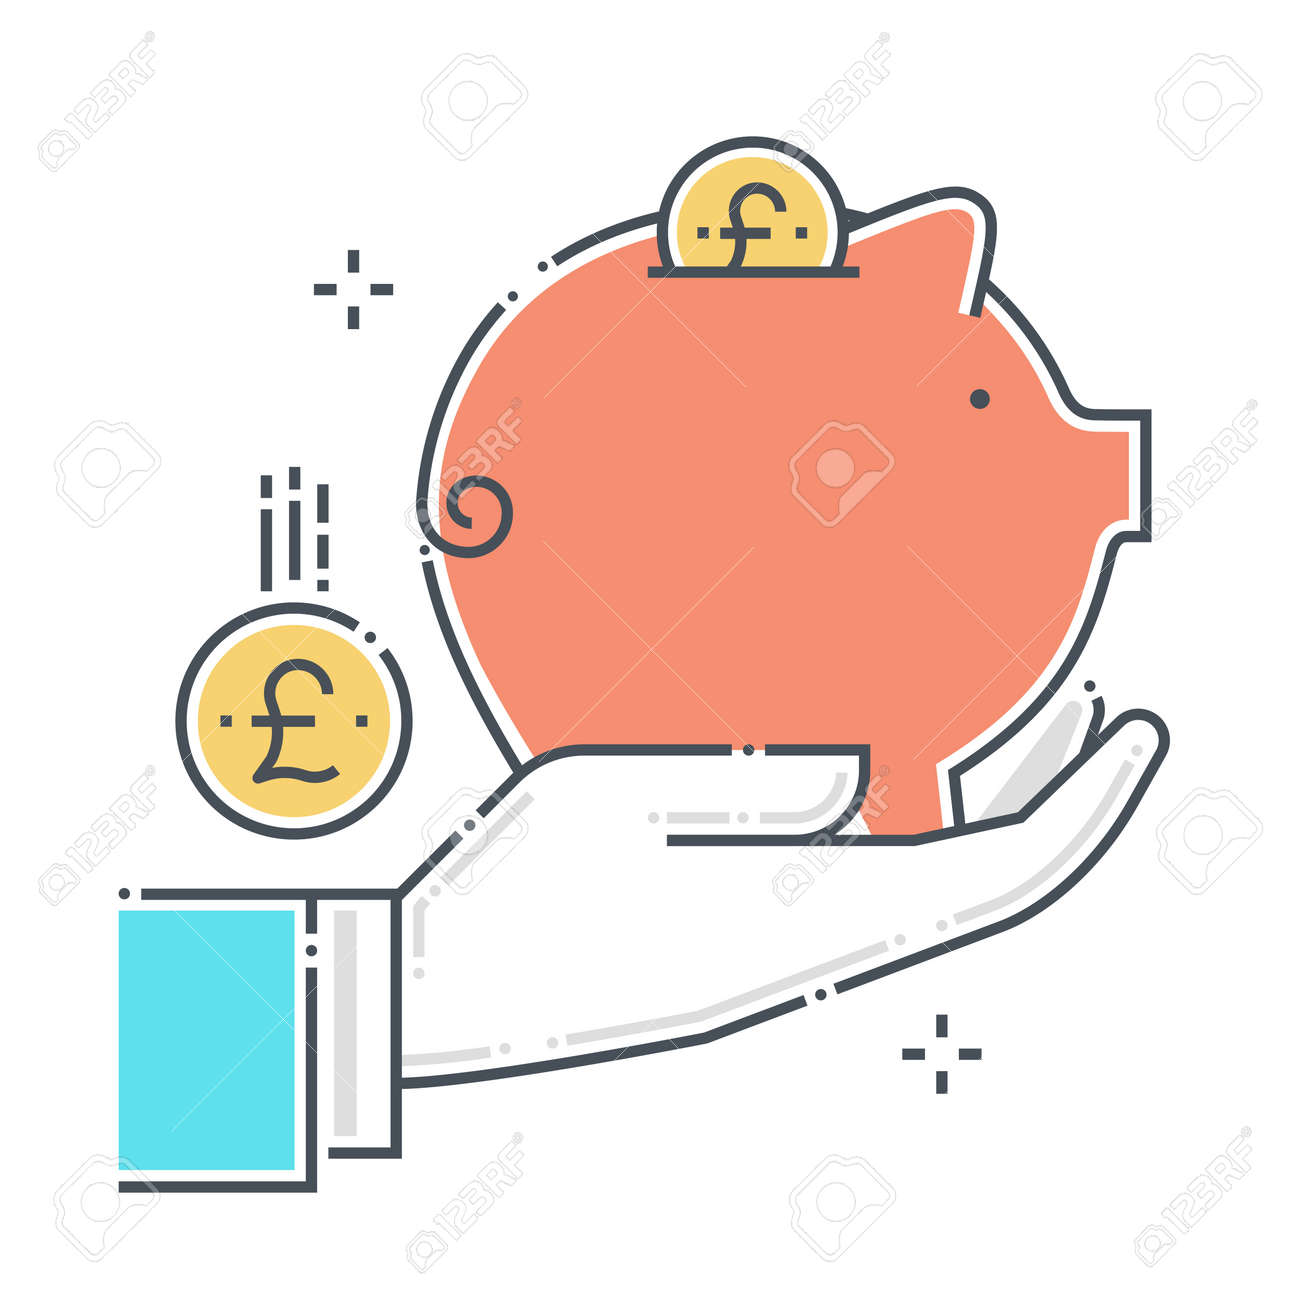 Piggy bank related color line vector icon, illustration. The icon is about investment protection, assurance, personal valuables, savings, save money. The composition is infinitely scalable. - 163698268